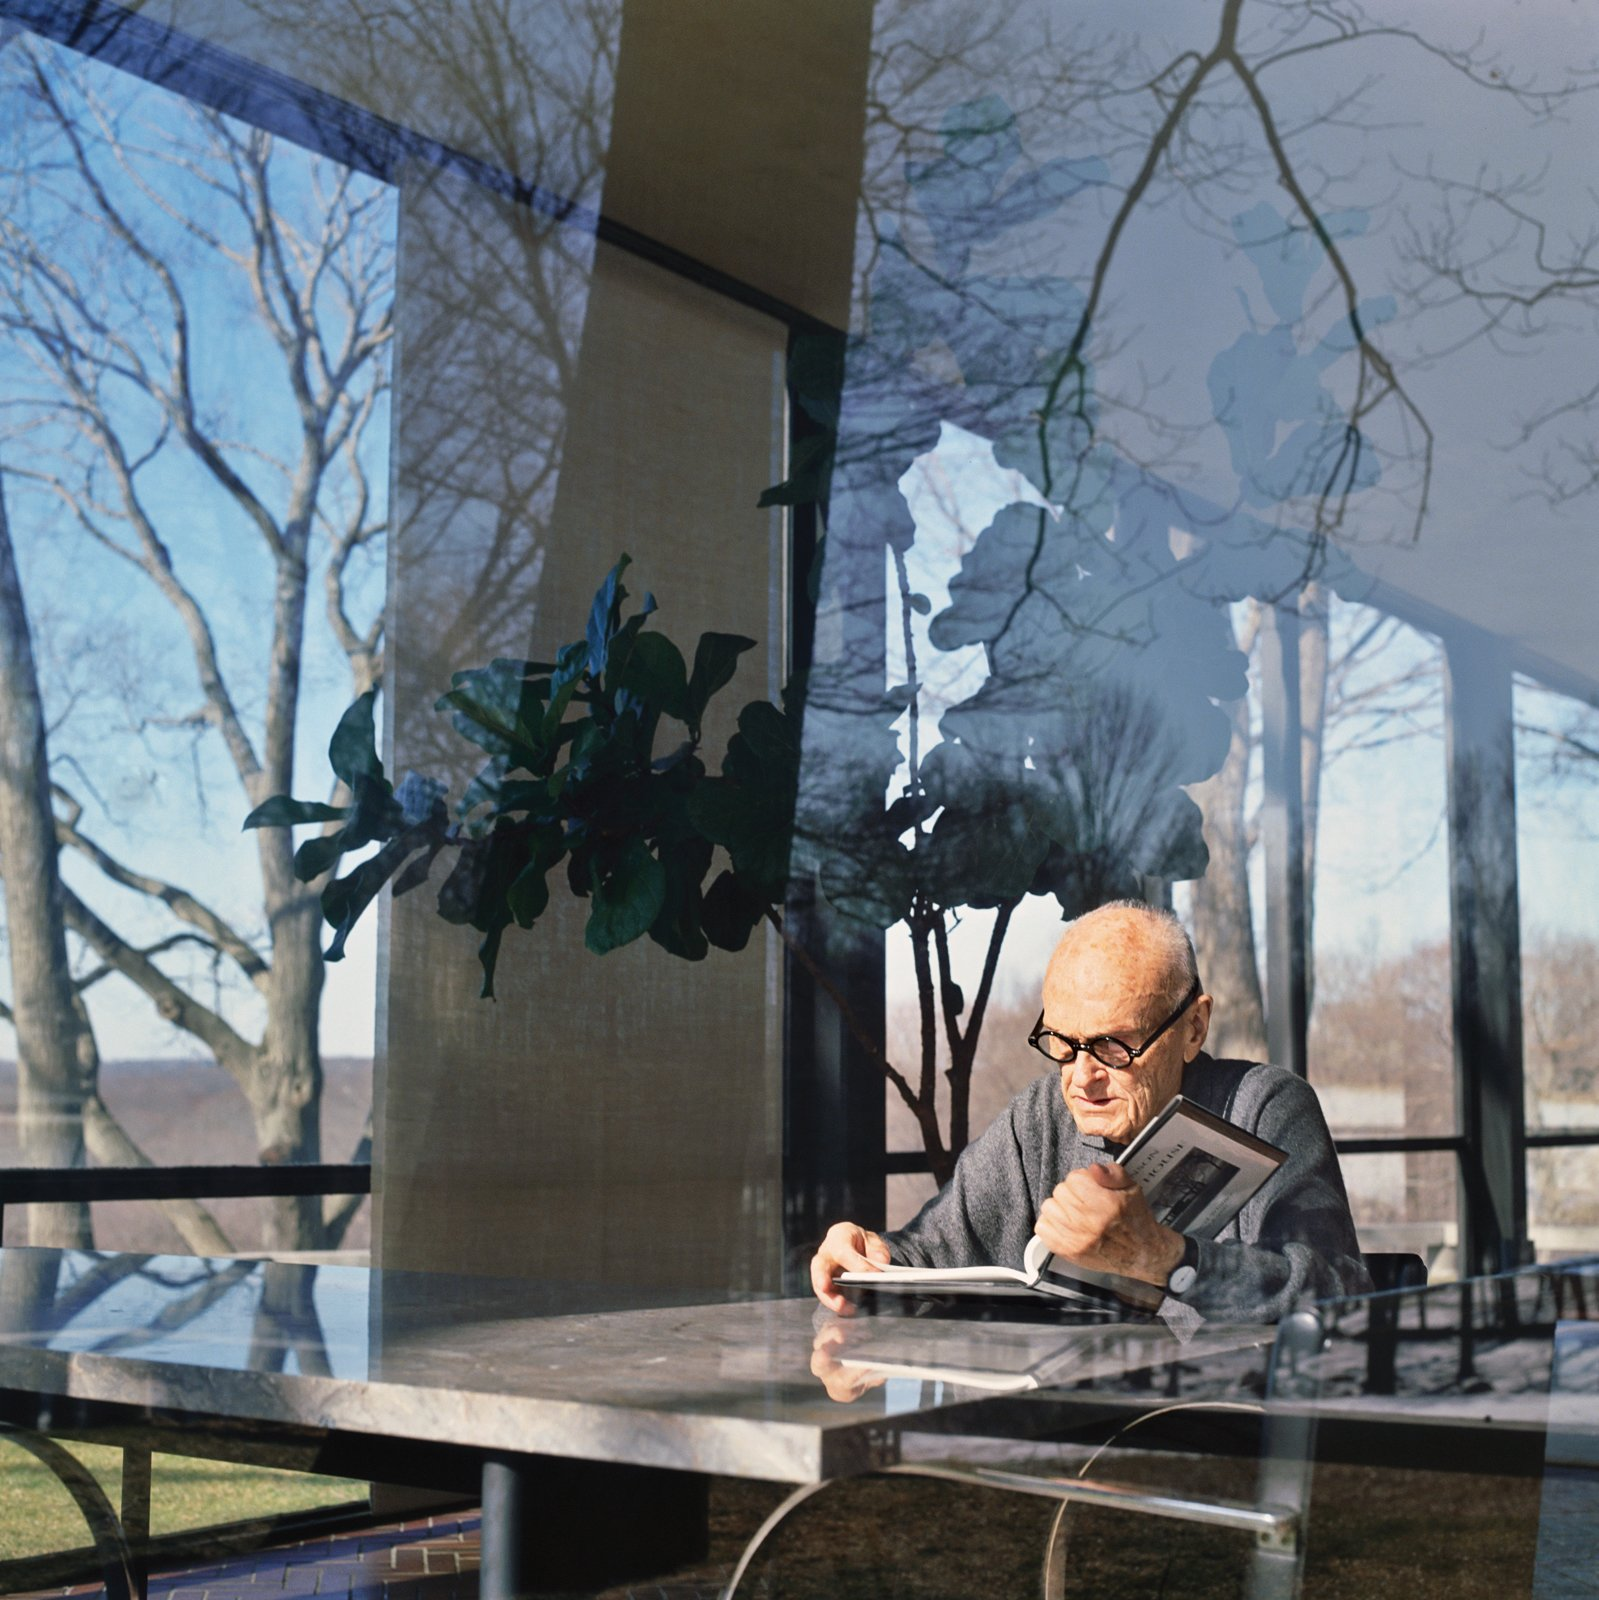 Architect Philip Johnson, renowned for the four-sided view from his iconic Glass House, could be called an aural architect. The house's approach is a gravel path that crunches loudly underfoot, announcing arrival. The house is tightly sealed, as silent as a church. And it is then, because of the perfect absence of sound, that the glass walls spring to life, like huge cinema screens, animated with outdoor images. Photo by Nora Feller/Corbis  Photo 2 of 3 in The World of Sound